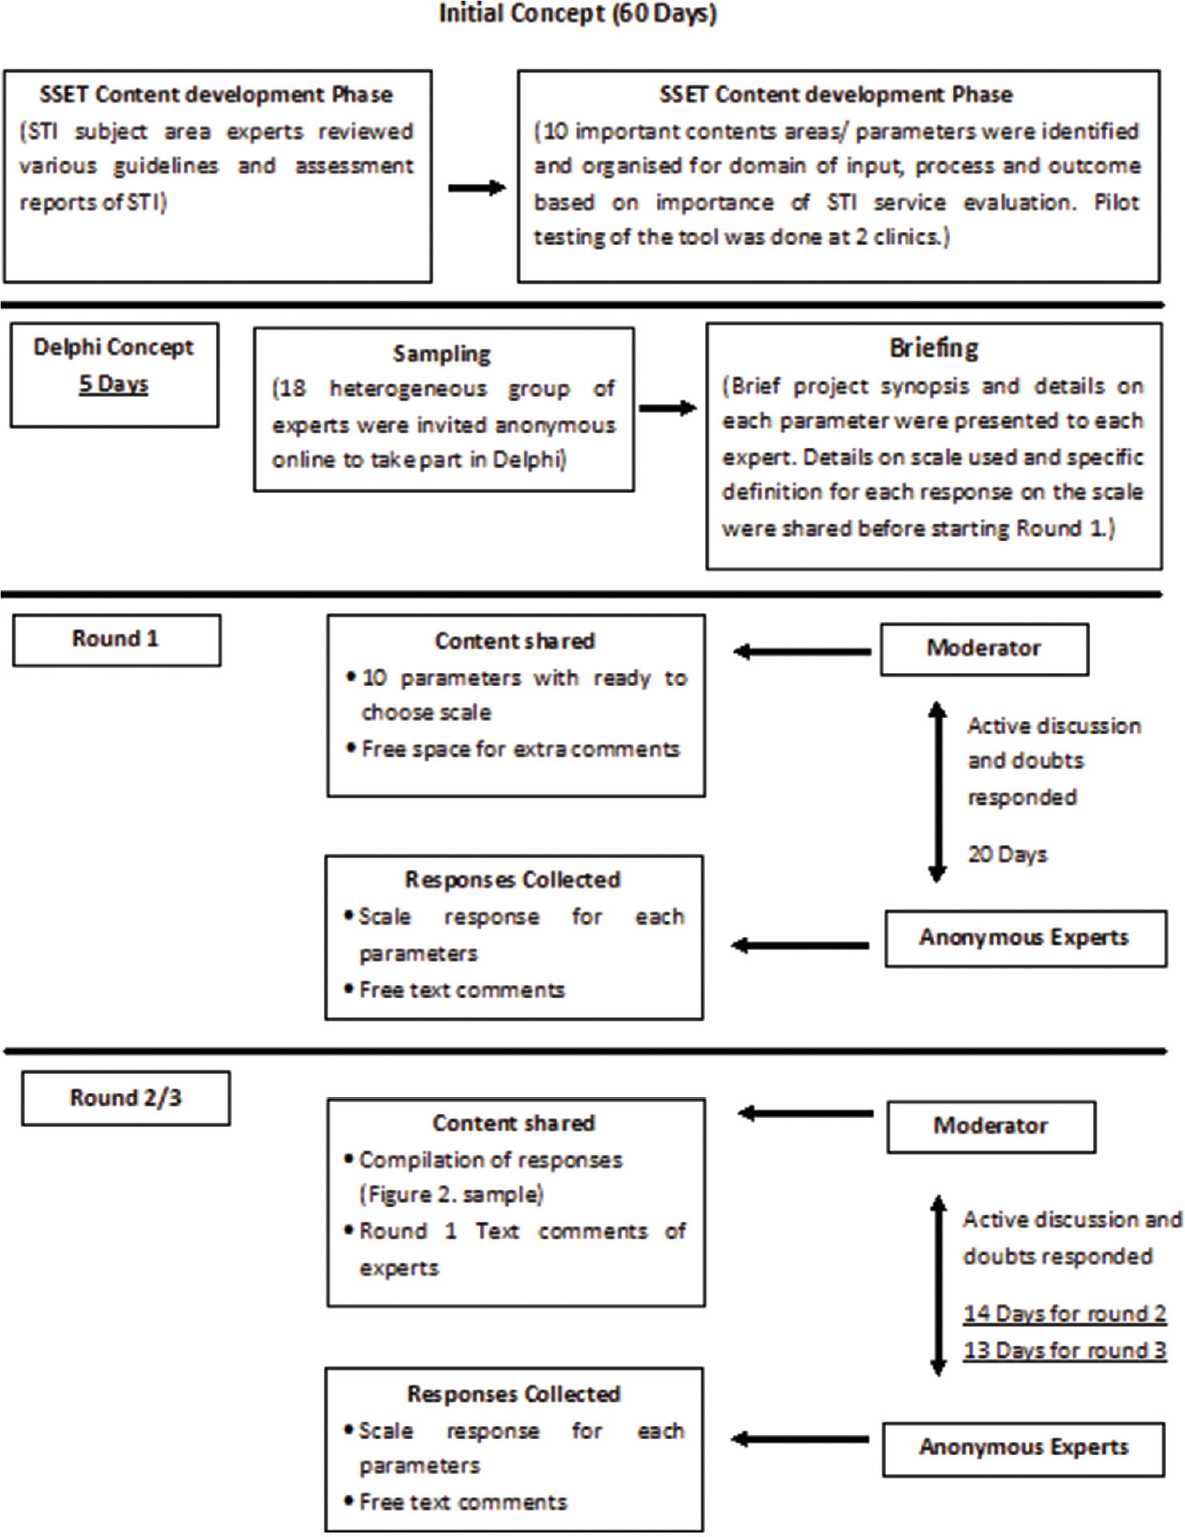 Figure 1: Sexually transmitted infection service evaluation tool development workflow